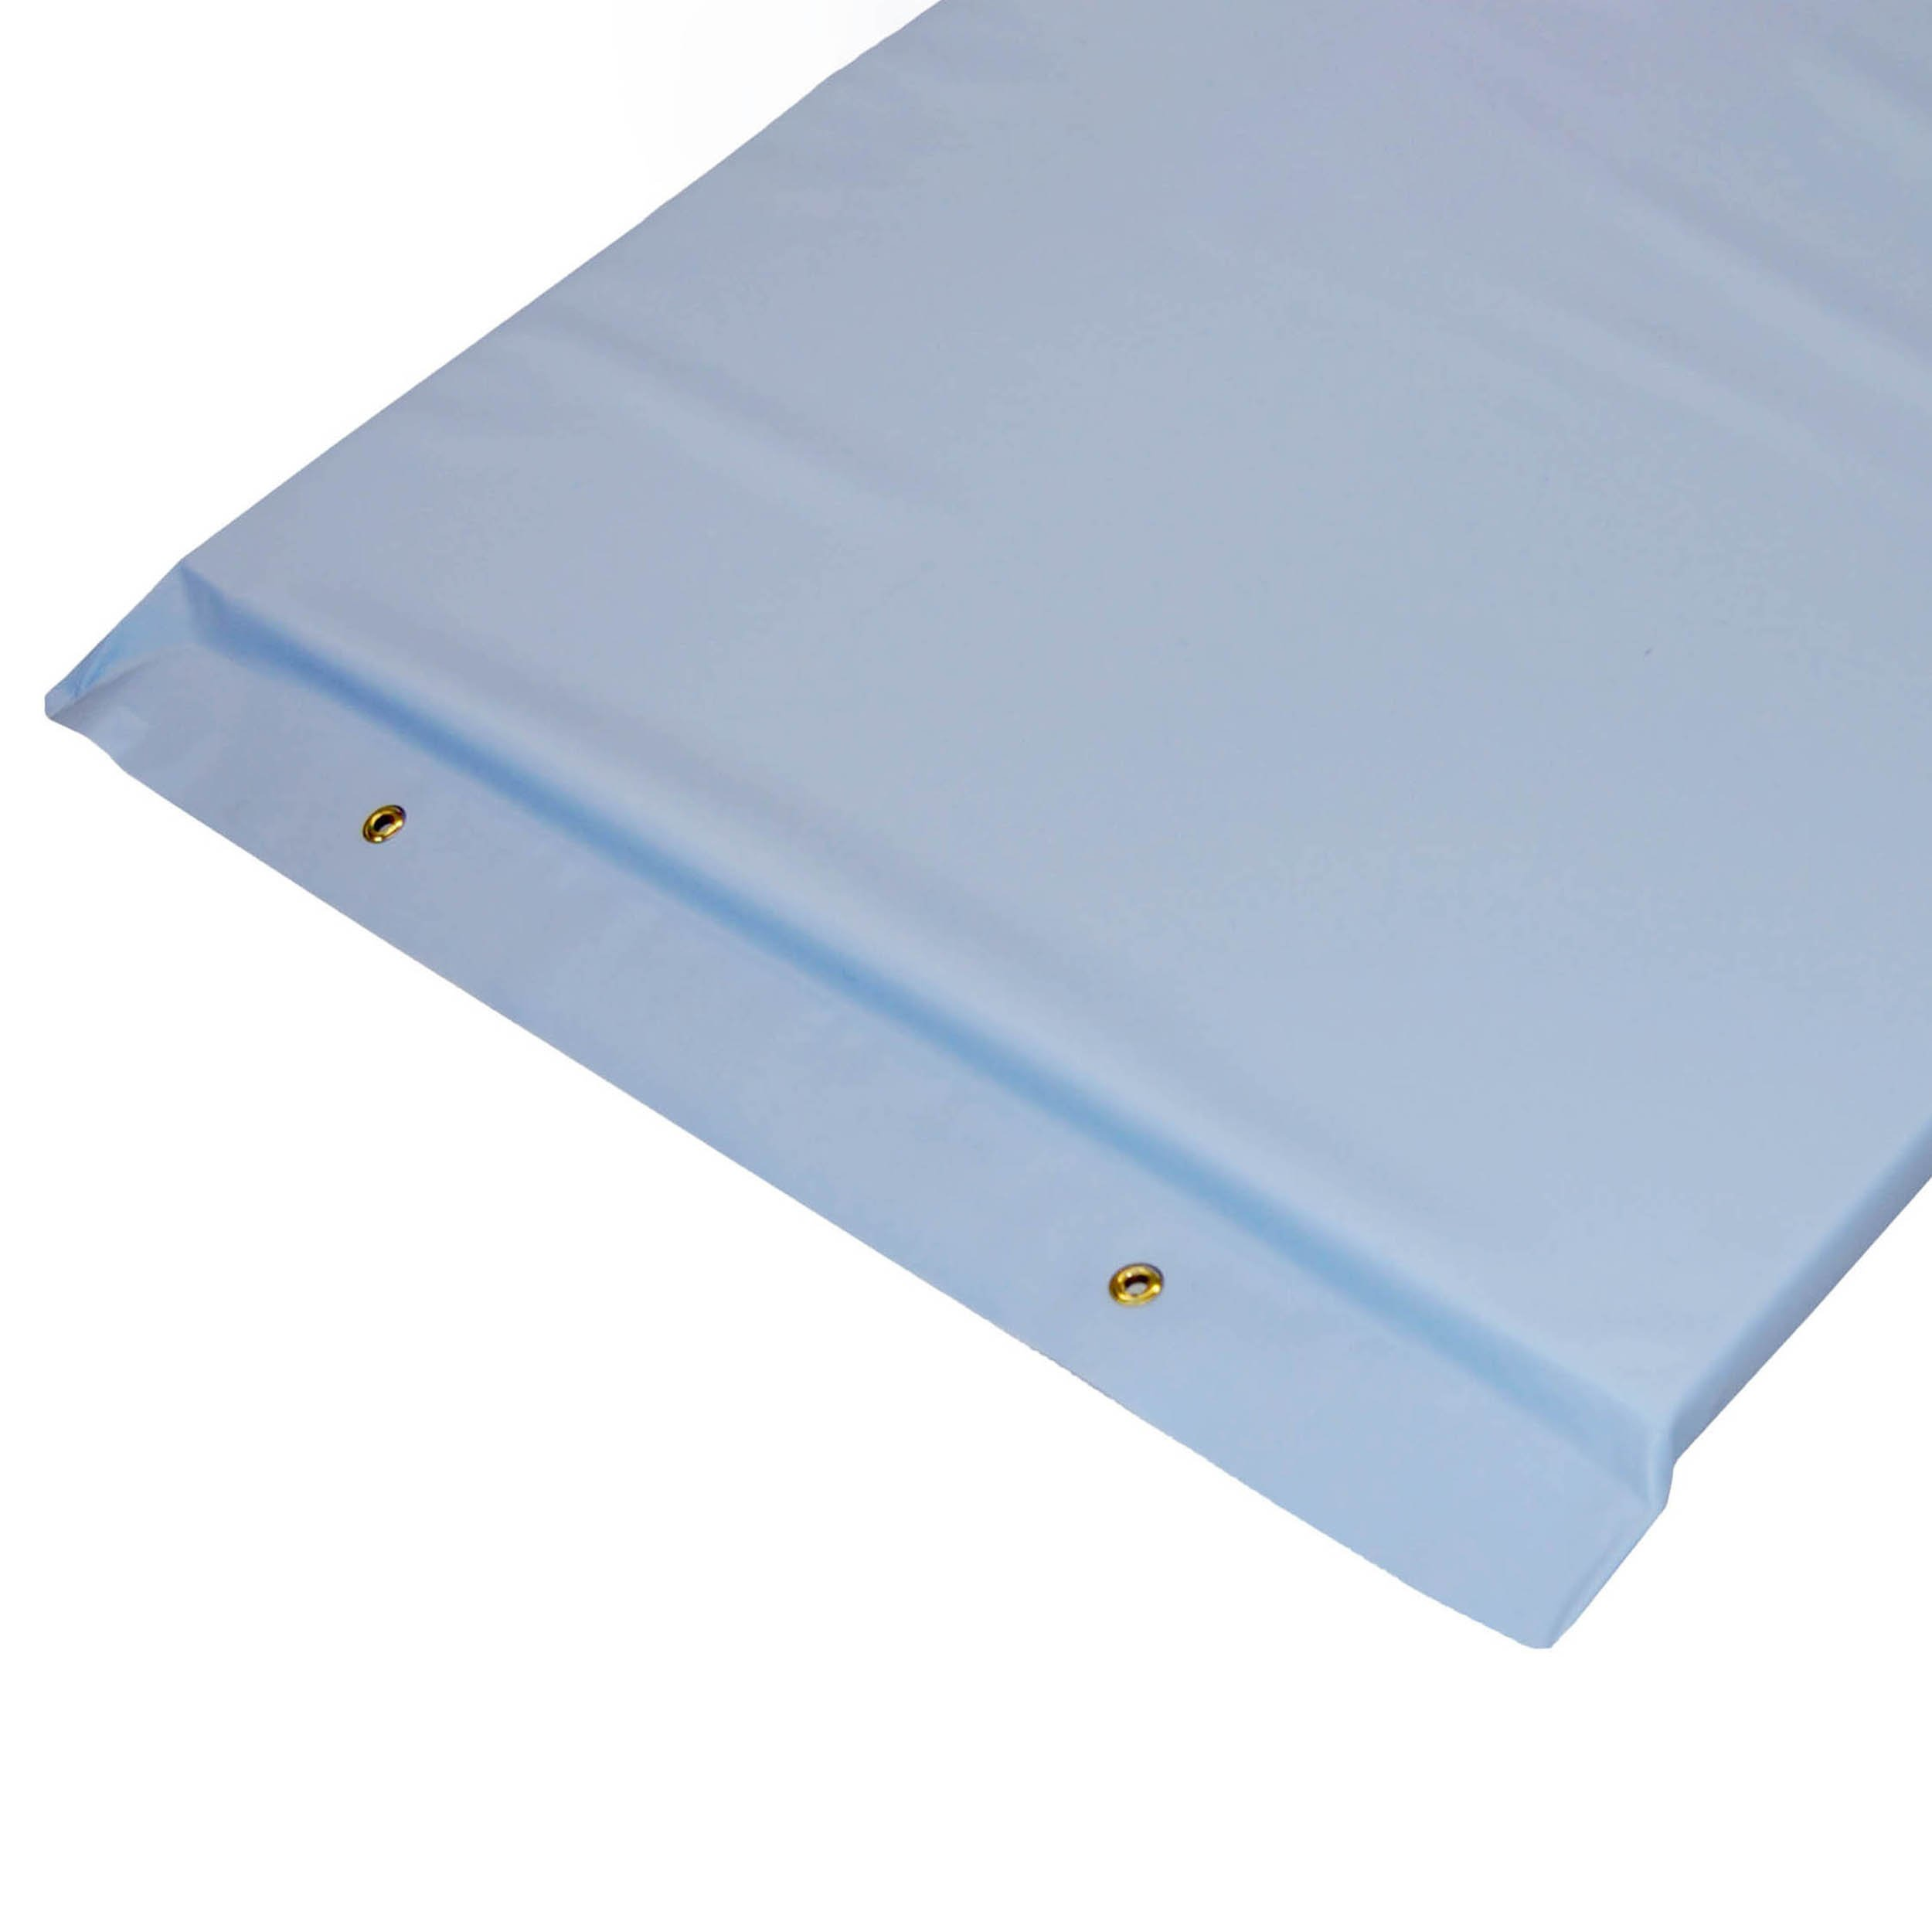 Economy Standard Radiolucent X-Ray Comfort Foam Table Pad - Light Blue Vinyl, With Grommets 72